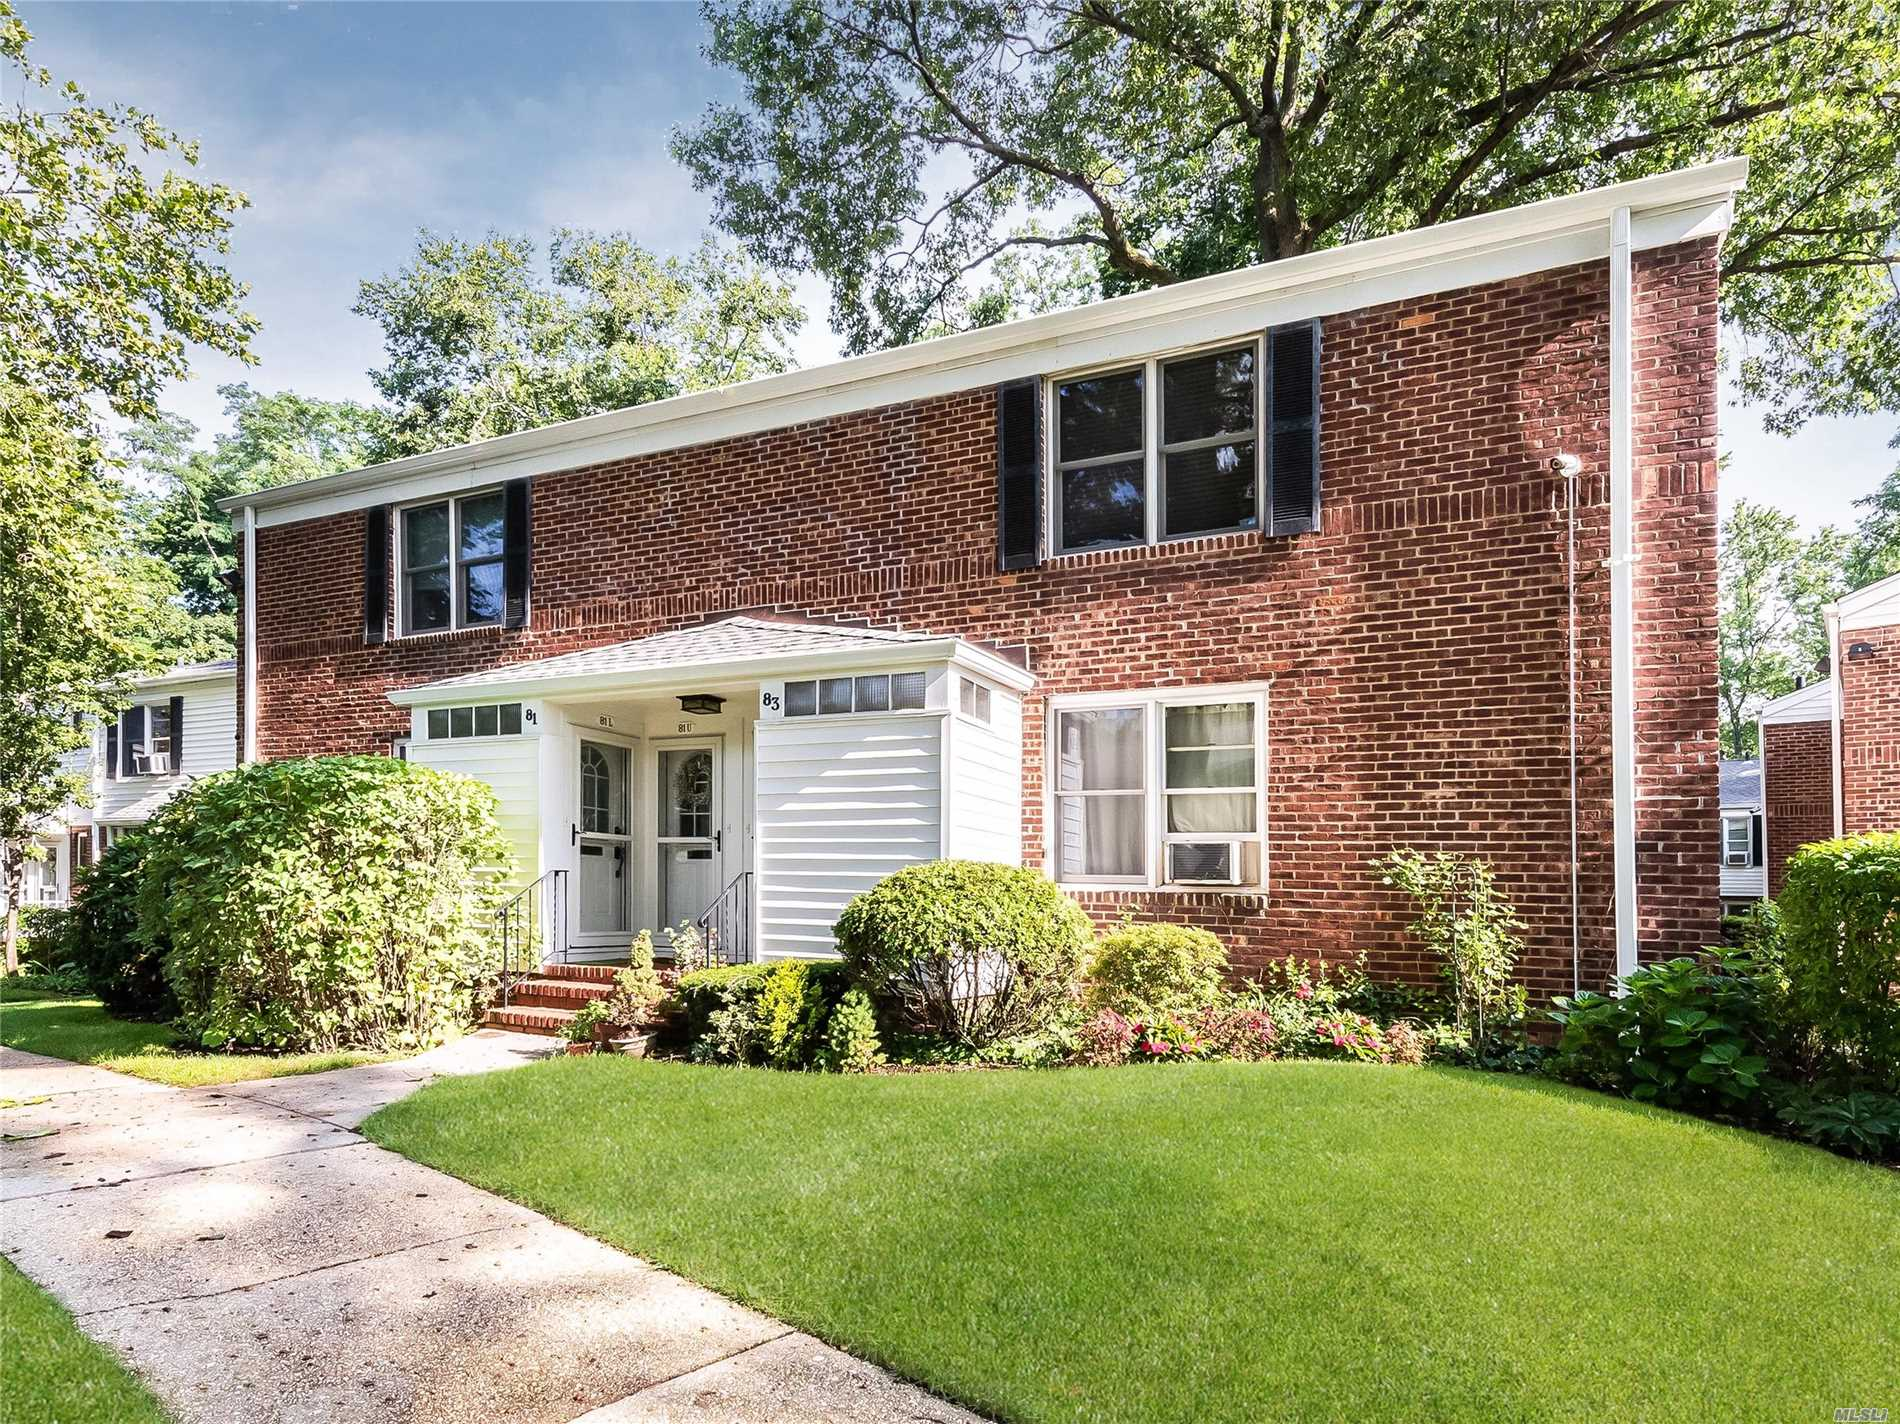 Diamond Sunny Upper Unit. Wonderful Updated Kitchen W/Granite Counters & Stainless Steel Appliances. Gorgeous Beautifully Tiled Bathroom. Gleaming Hardwood Floors. Lots Of Closet Space & Attic Storage. Updated Electric. Nice Quiet Location. Convenient To Laundry Room & Parking. Maintenance Includes Taxes, Heat & Water. Maintenance W/Star: $564.00. Amenities Include: Gym, Laundry, Playground, Storage & Car Wash Areas On Premises. Easy Access To Lirr At Sea Cliff Sta. Immaculate & Move In Ready.